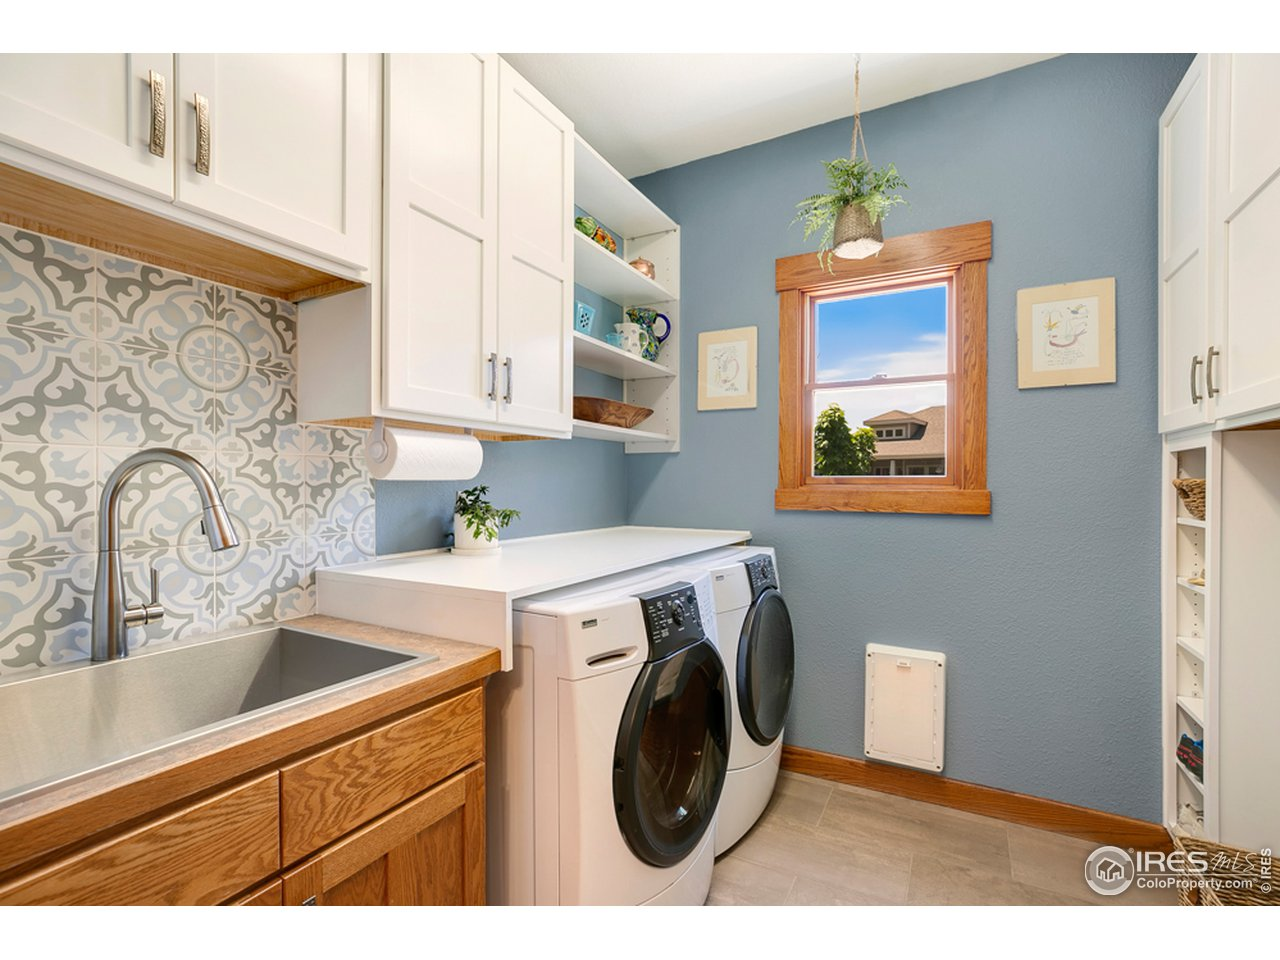 Recently updated laundry room close to garage and loads of builtins!